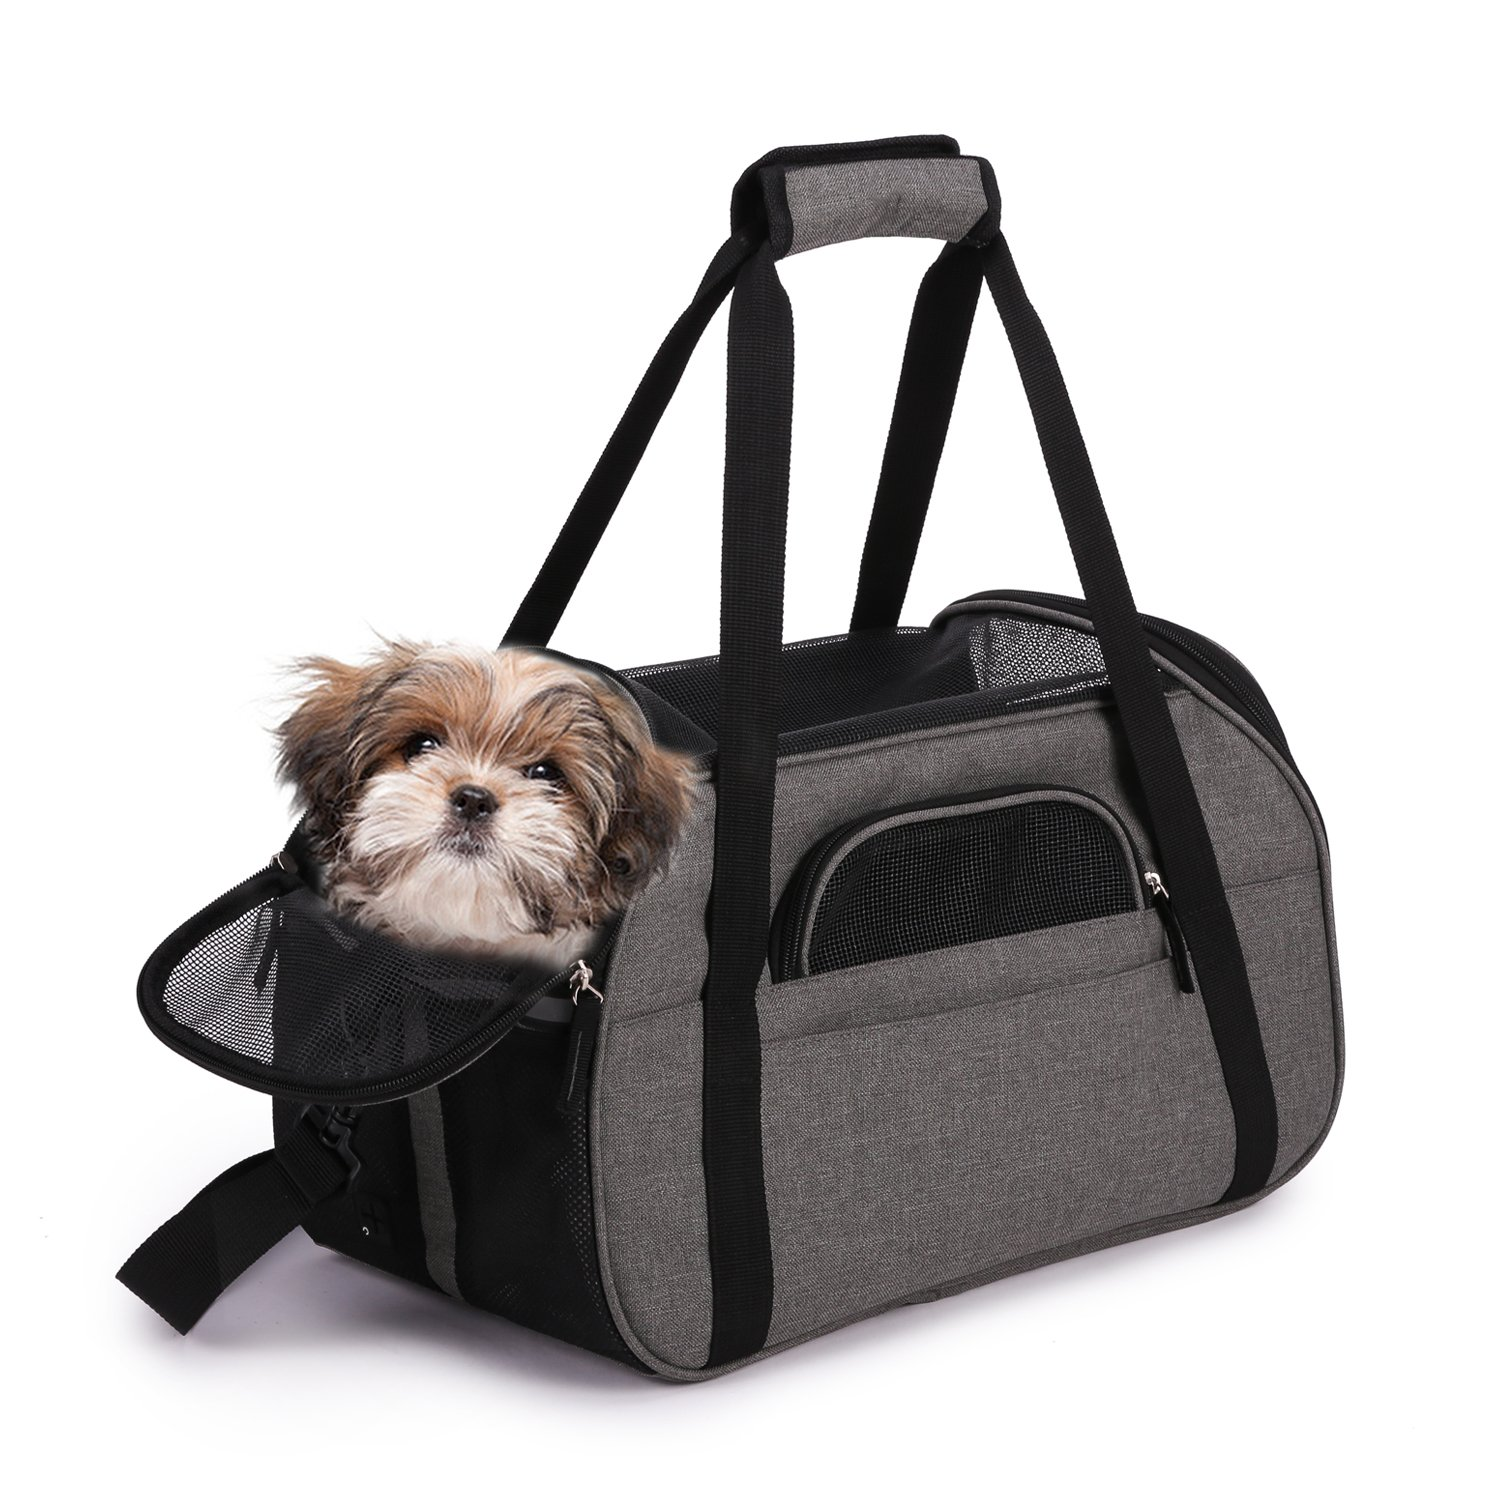 "Jespet Soft Sided Pet Carrier Comfort 17"" for Airline Travel, Portable Dog Tote Bag for Small Animals, Cats, Kitten, Puppy, Smoke Gray"